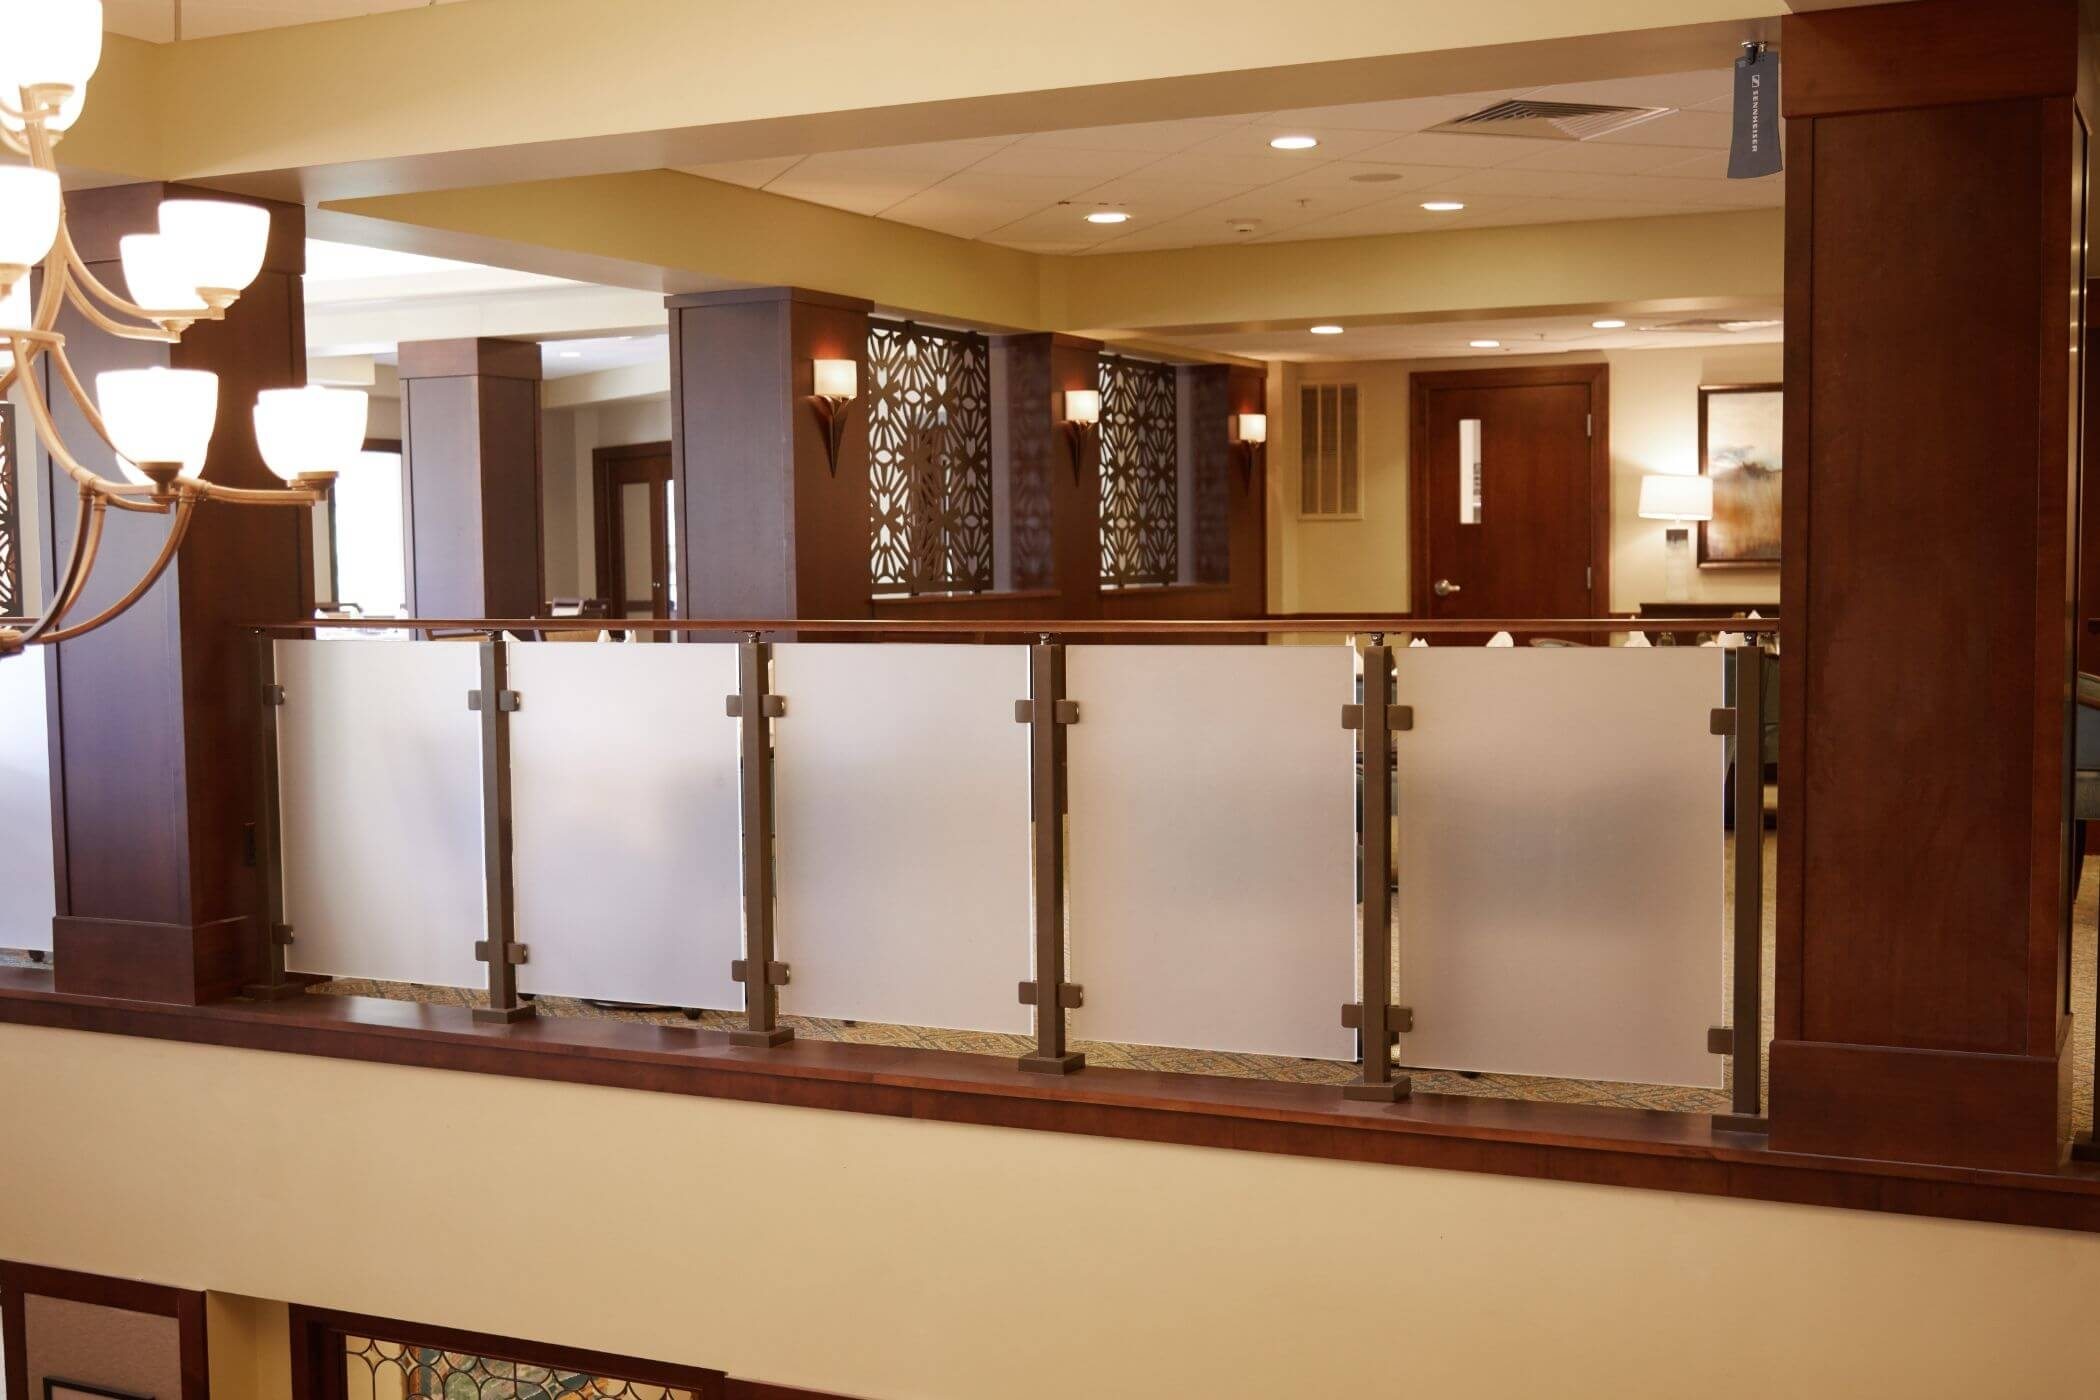 Frosted Glass Railing Viewrail   Wooden Handrail With Glass   Contemporary Wood Glass   Oak   Timber   Staircase   Steel